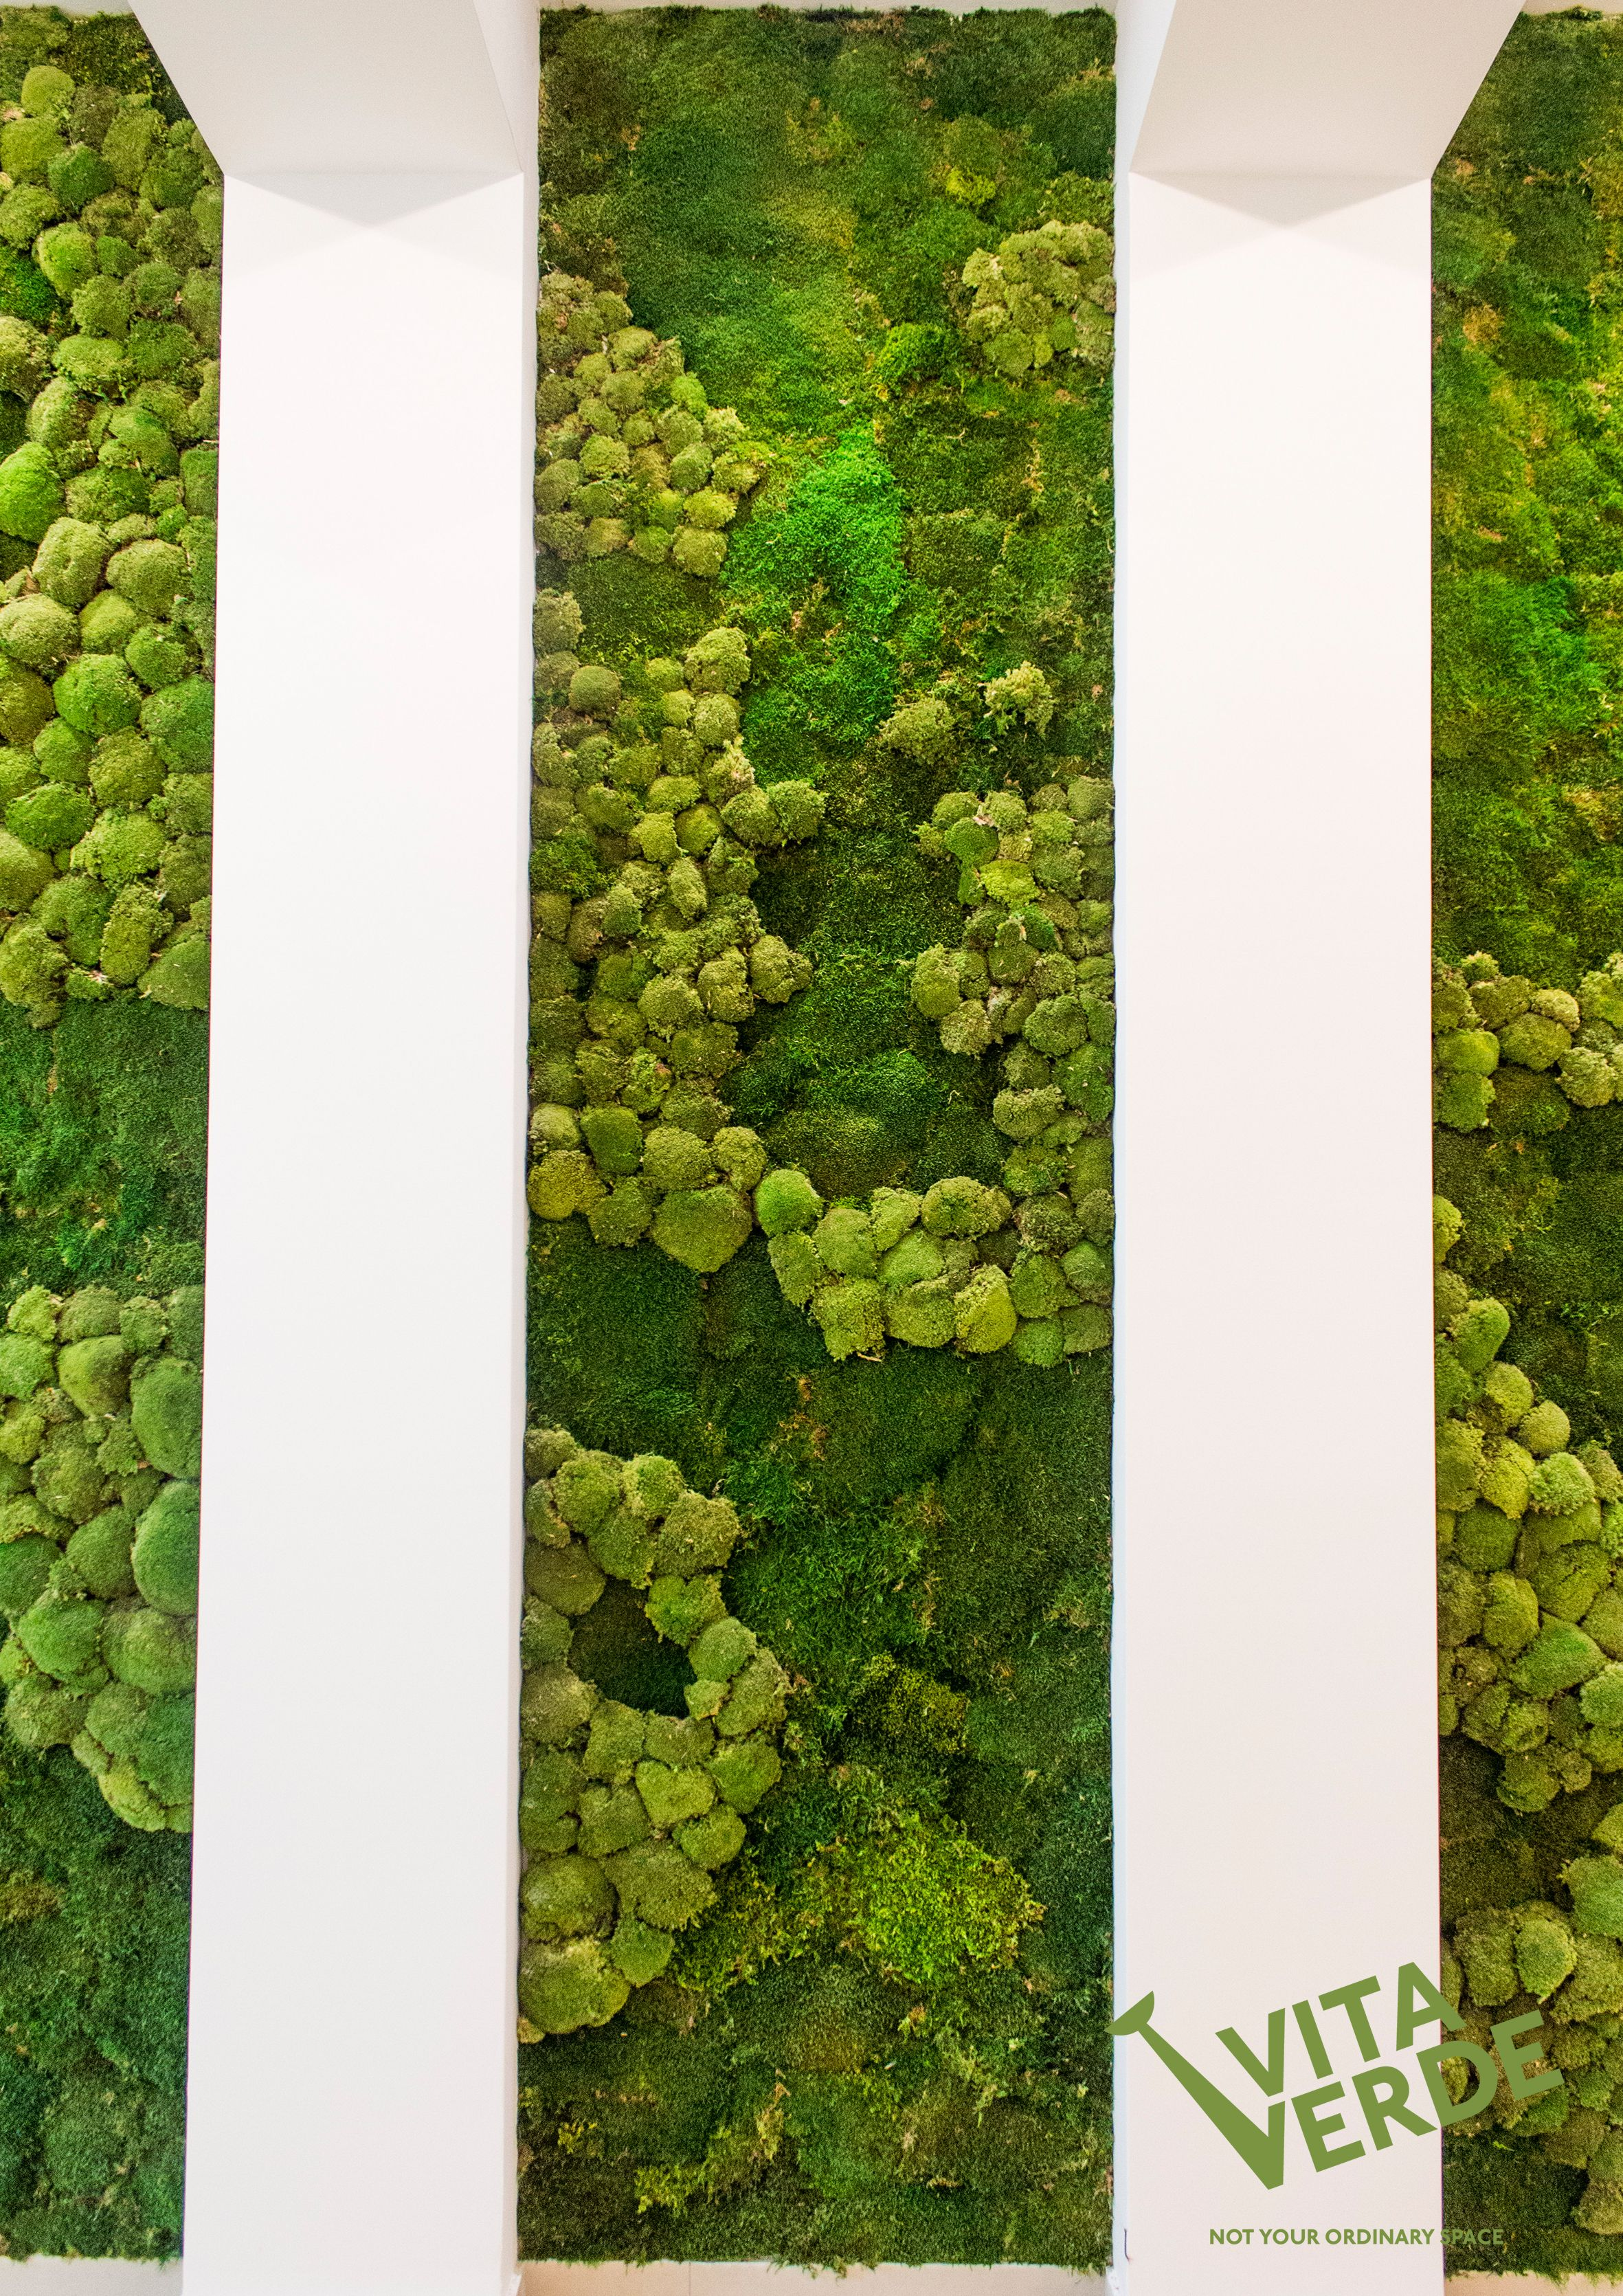 Mosswallideas Do You Want To Make People Feel Great Relaxed Happy Place A Moss Wall At Your Office To Reduce Str Vertical Garden Moss Wall Moss Wall Art